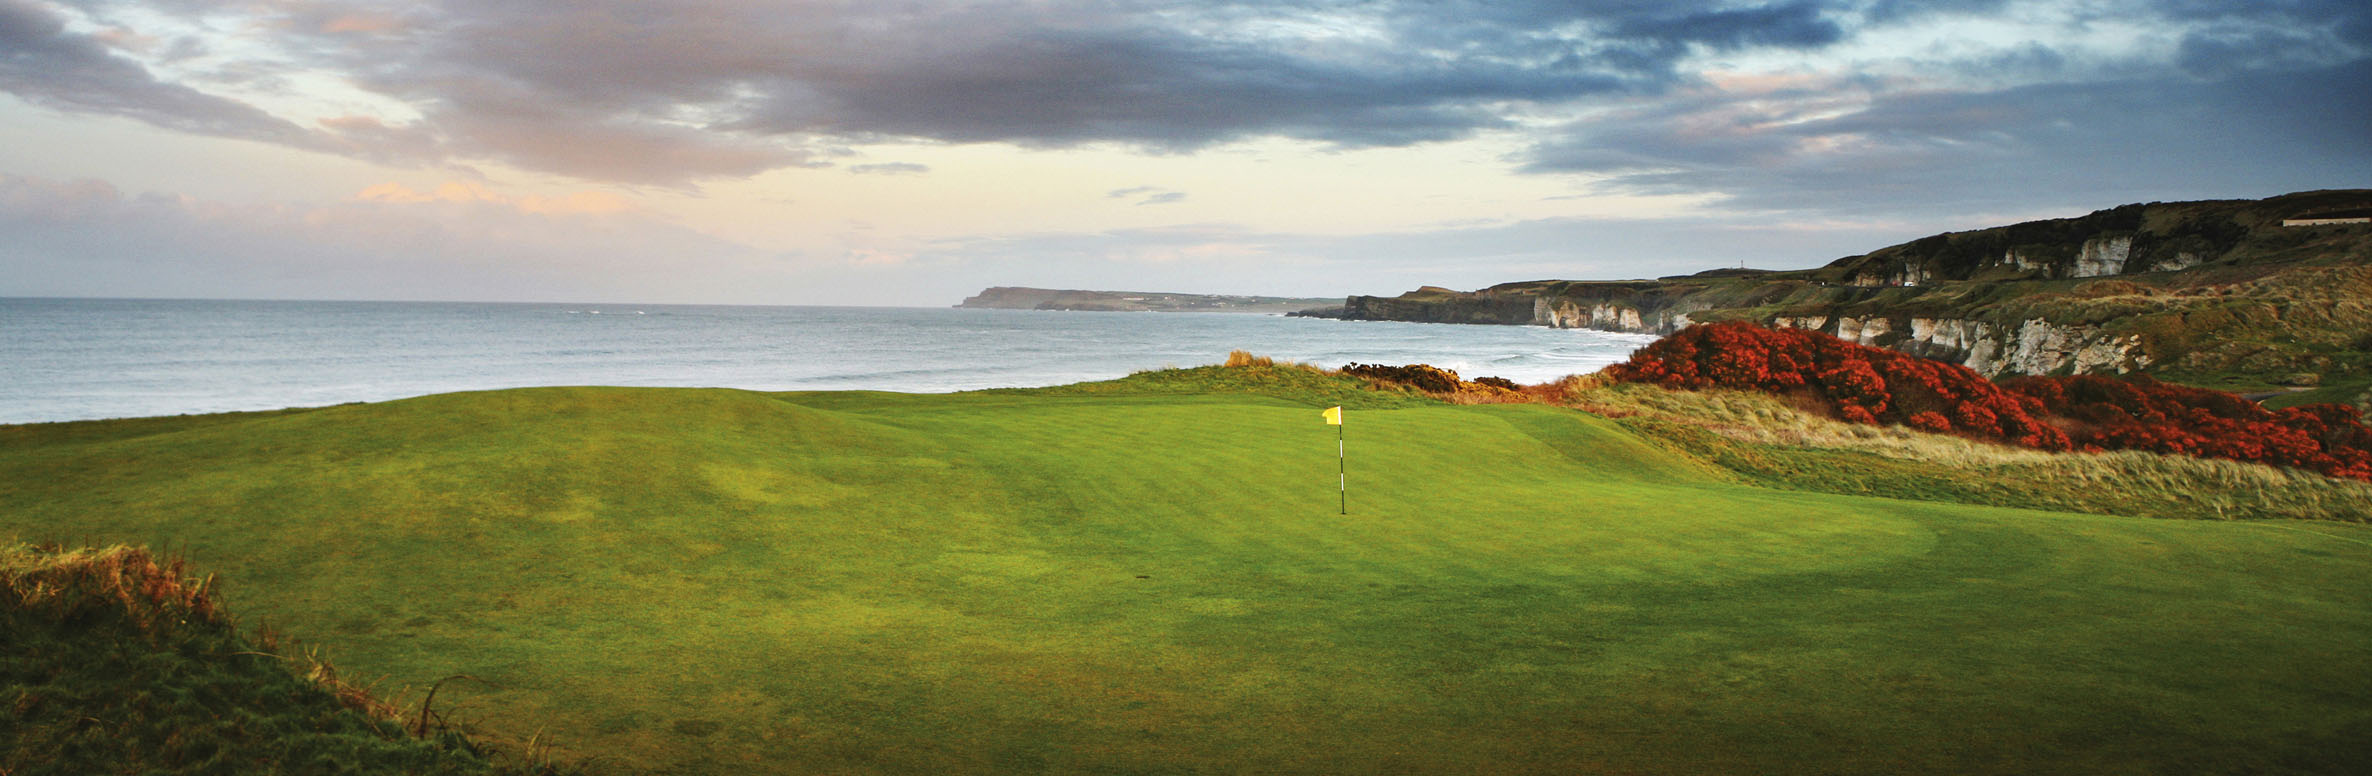 Golf Course Image - Royal Portrush Golf Club No. 5